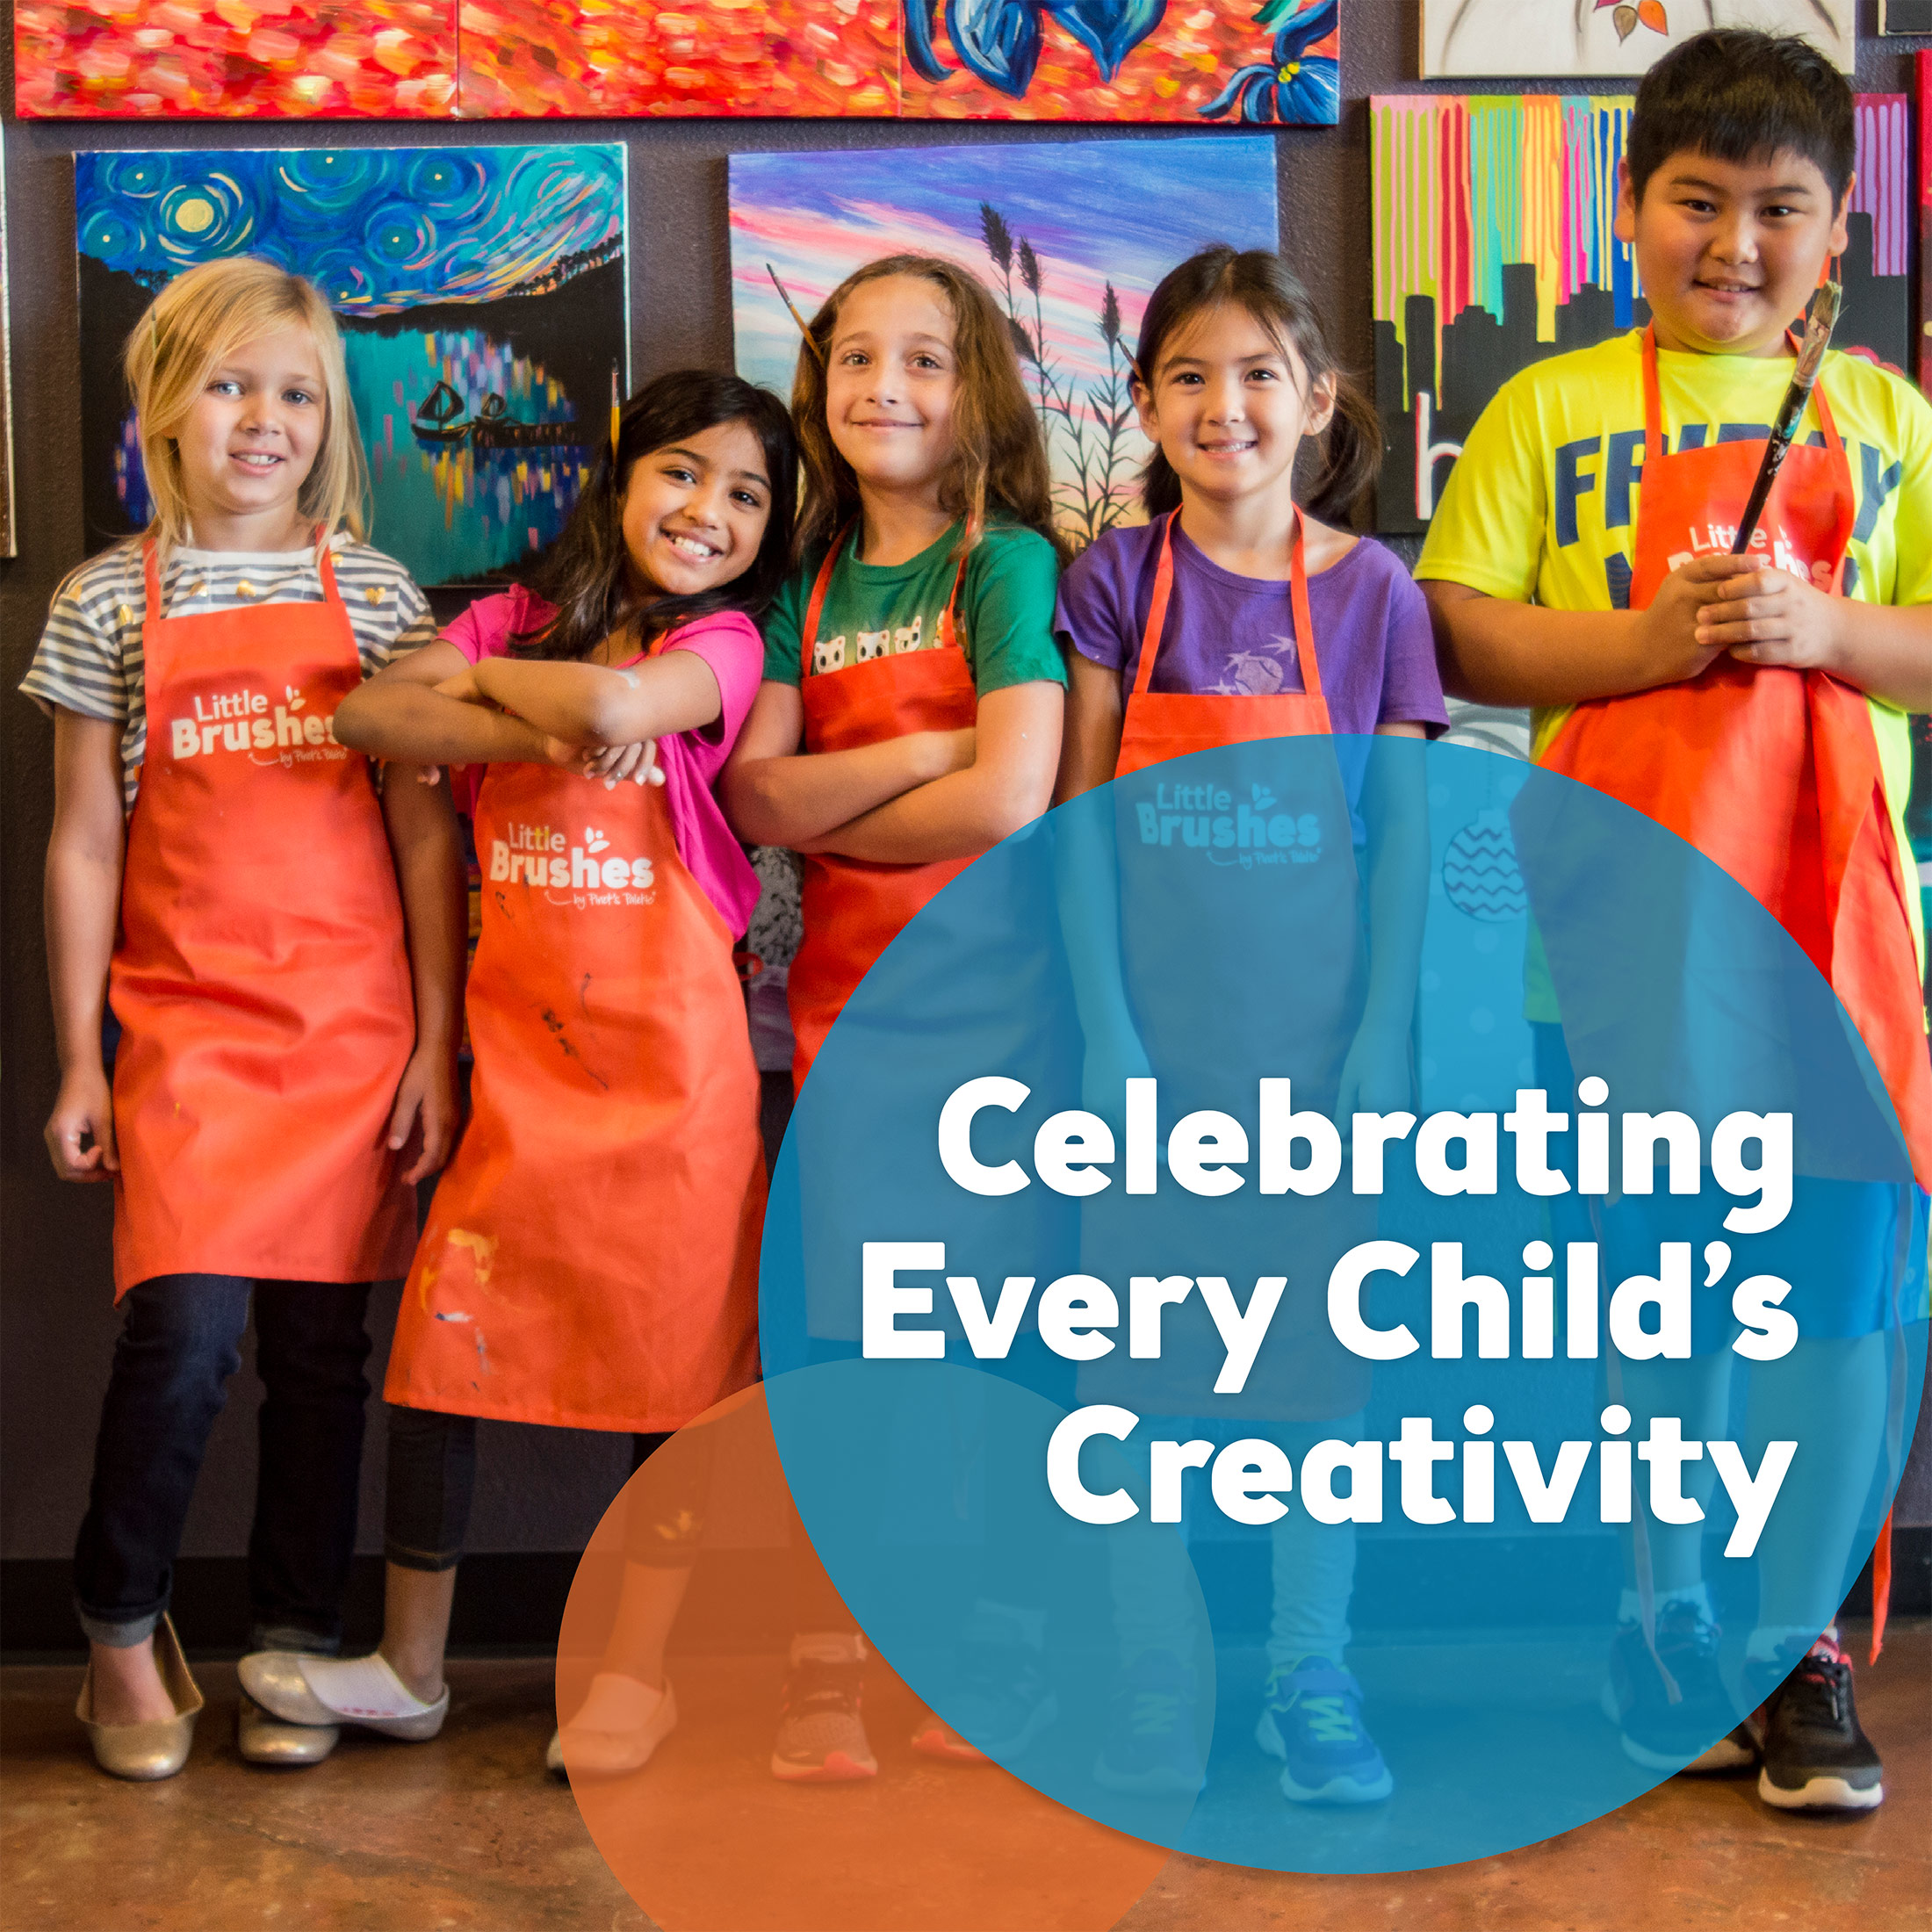 Kids Art Events:  Art Camps, Girl Scouts, Home School, Field Trips, Summer Enrichment  Programs